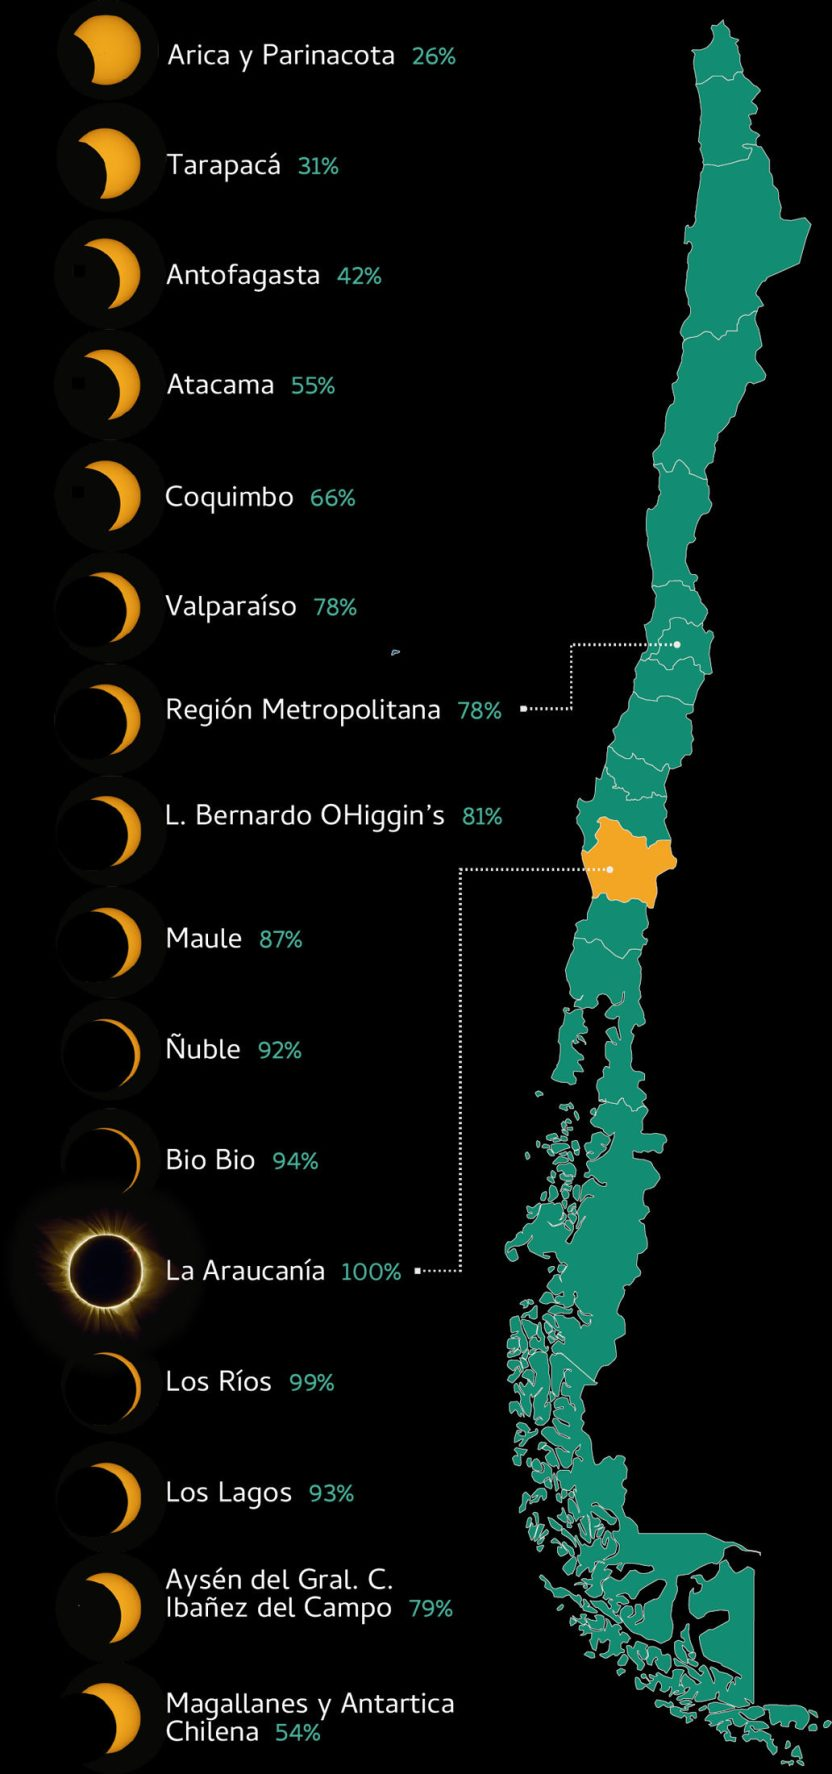 visibilidad-eclipse-chile-2020